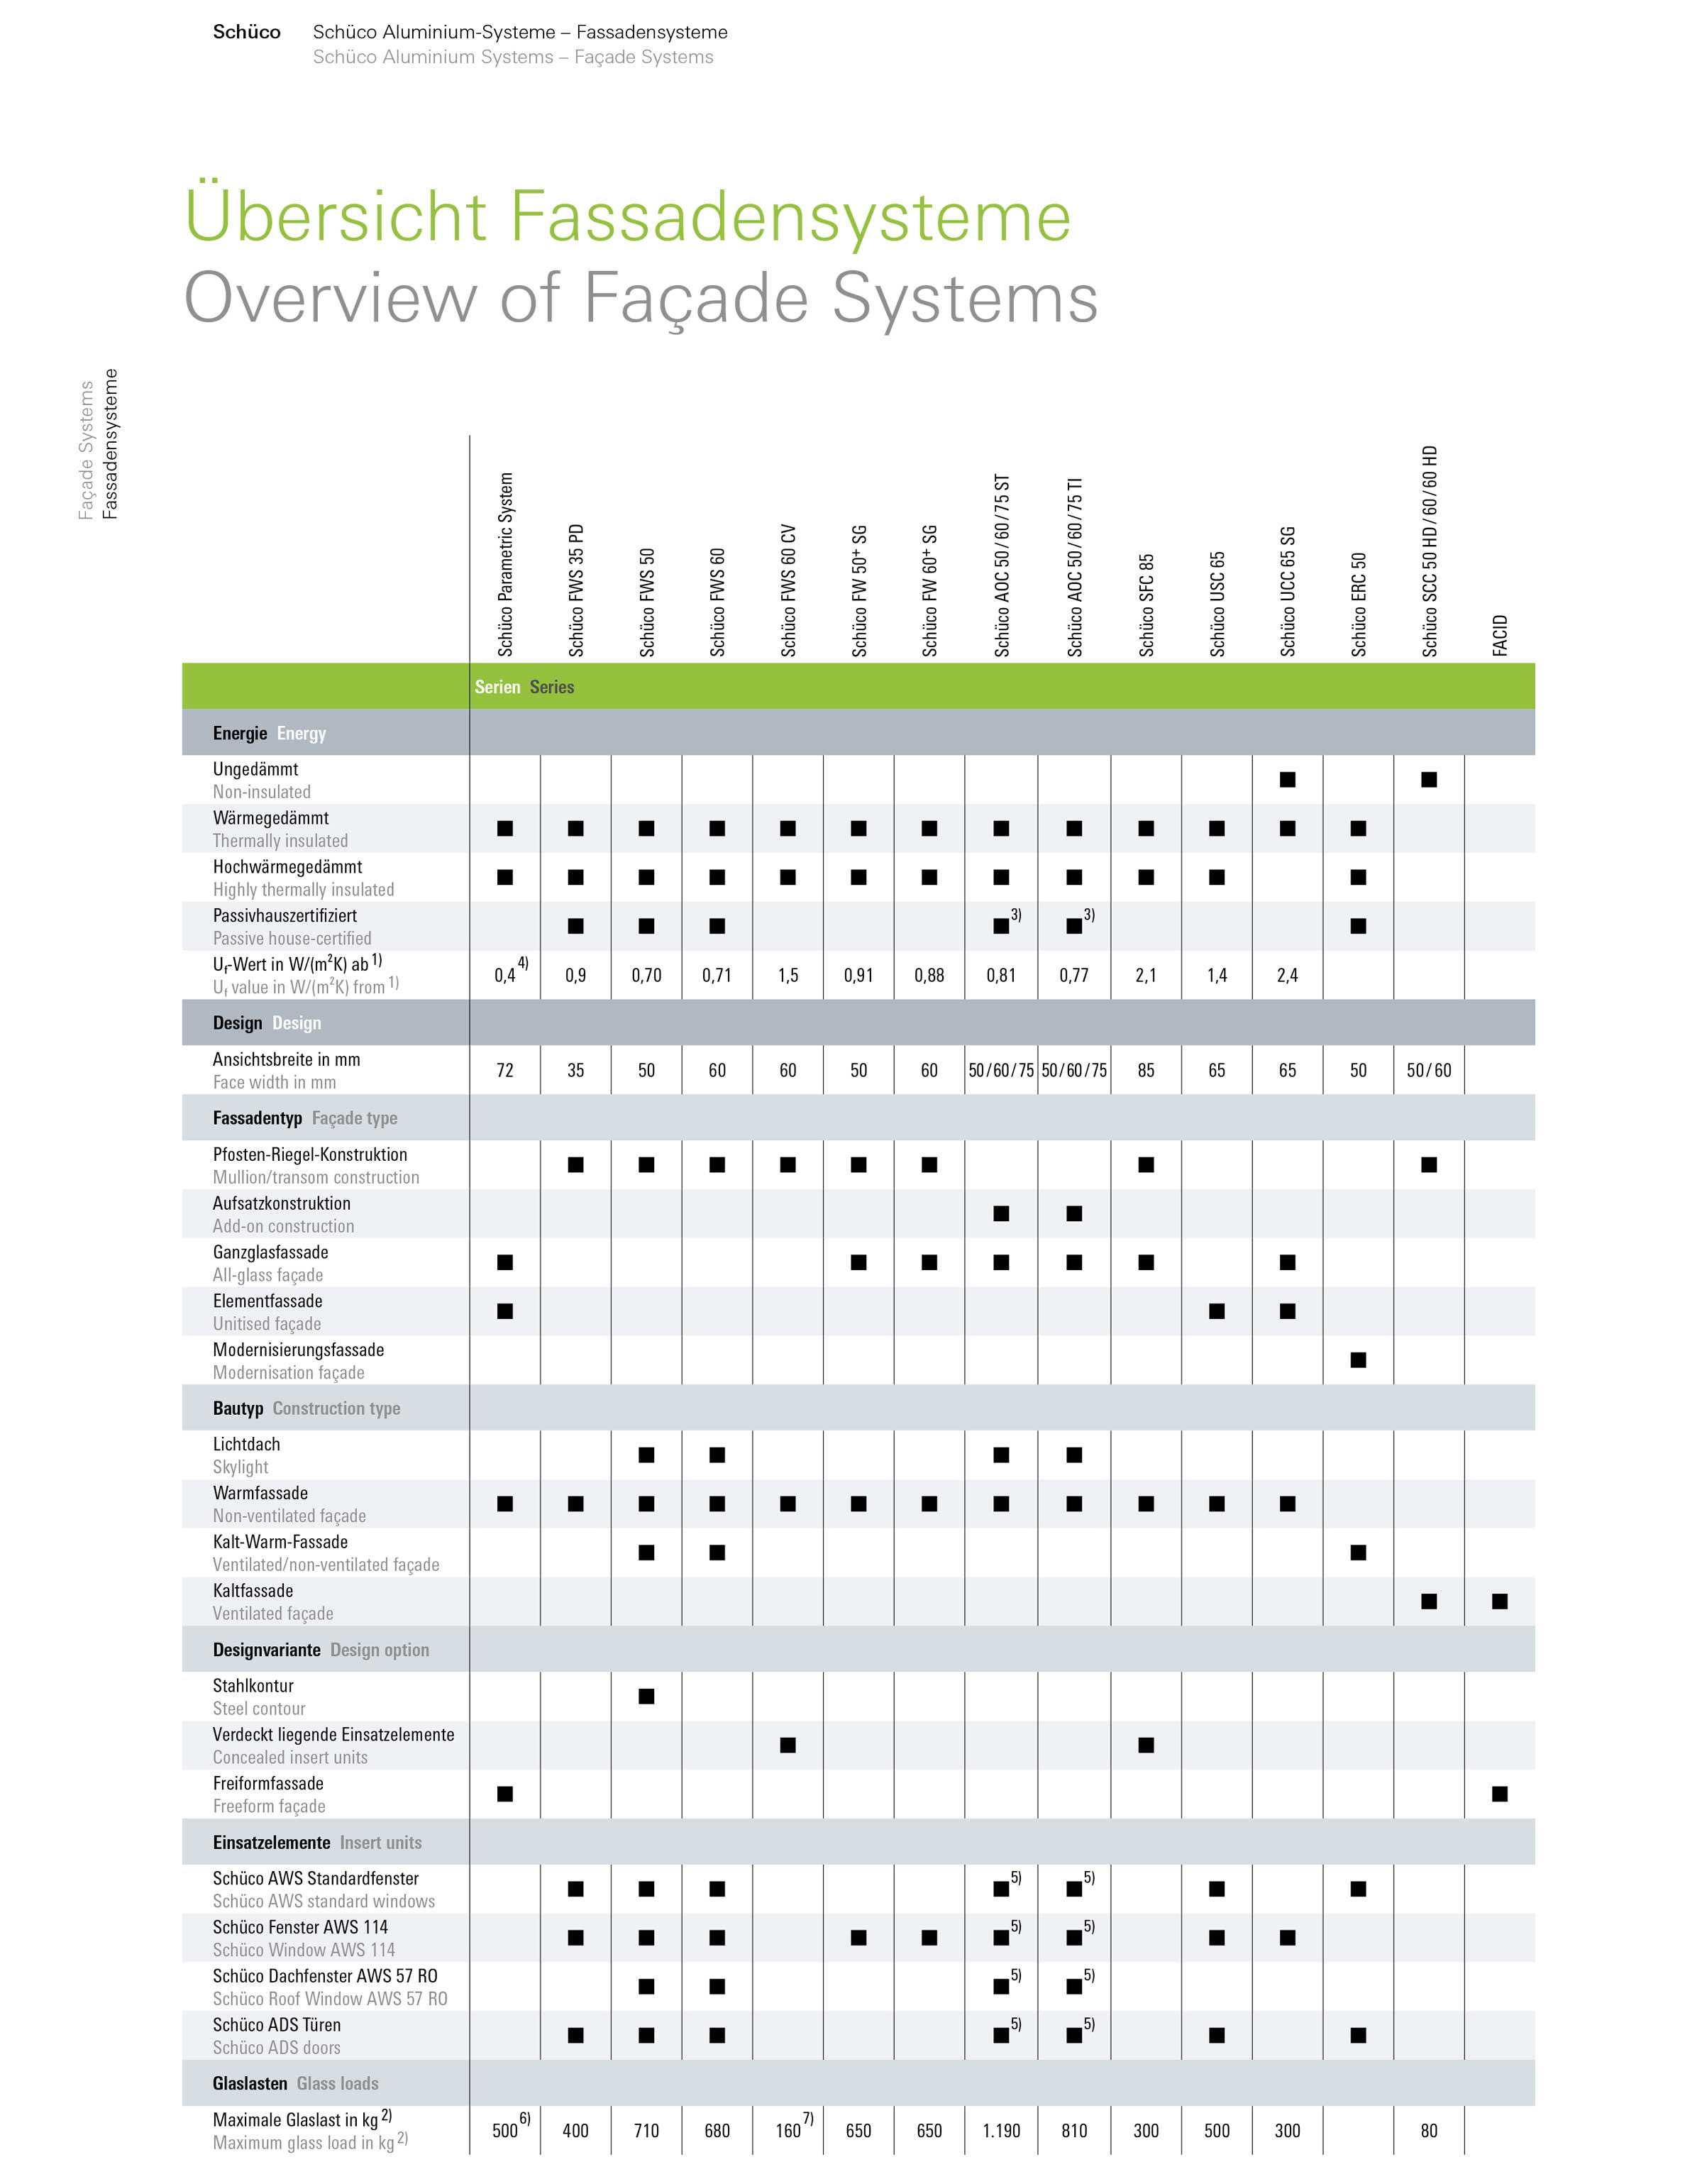 Overview of Facade Systems